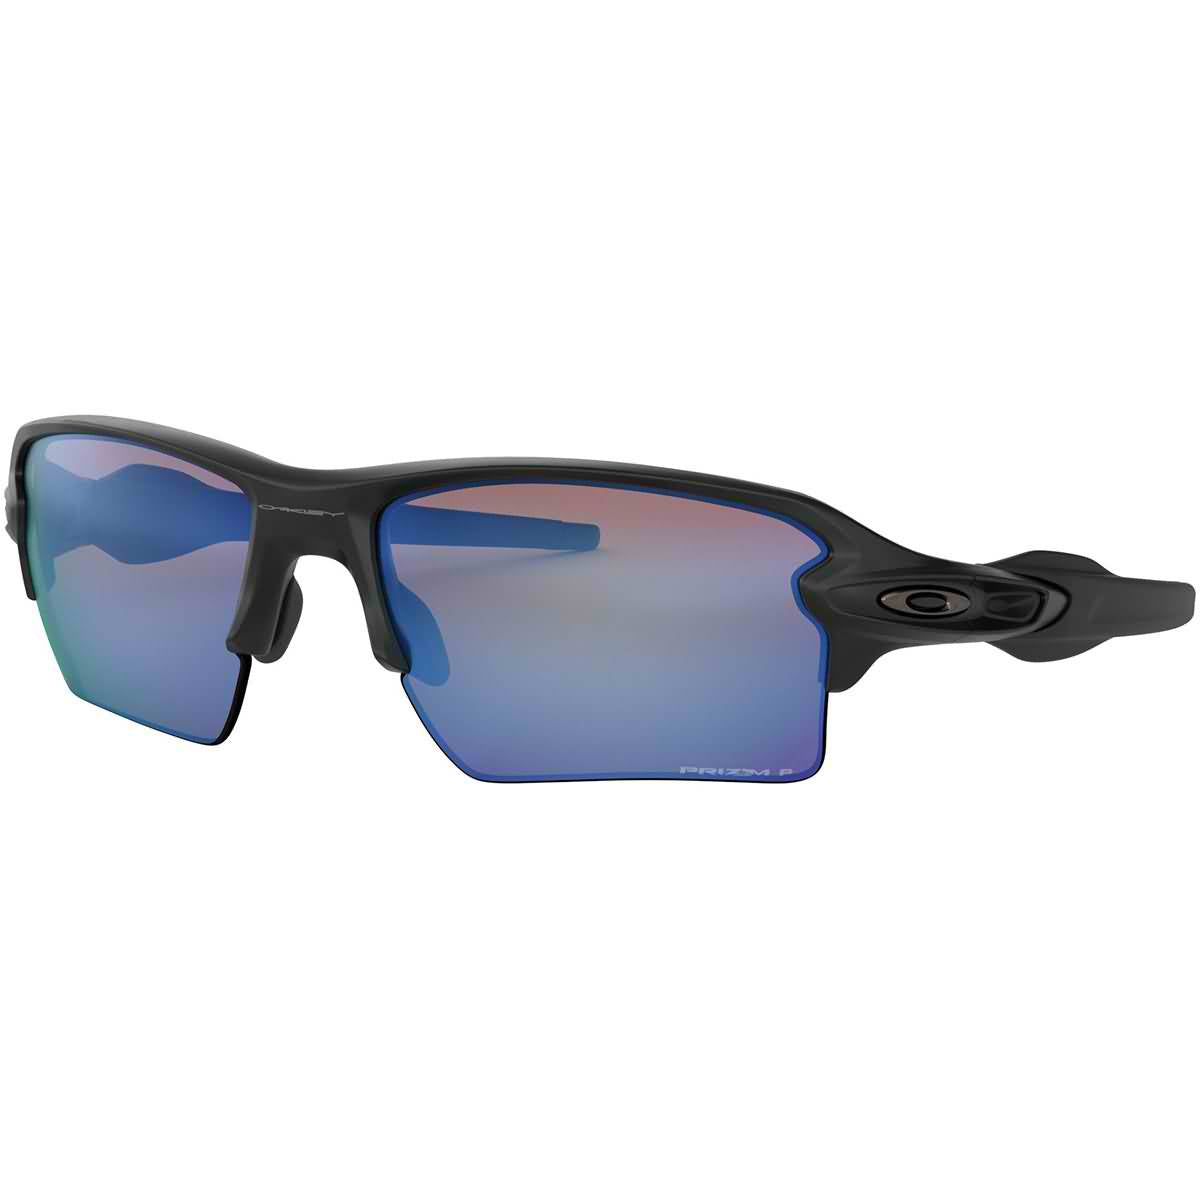 4aea688b637 Oakley Flak 2.0 XL Prizm Men s Sports Polarized Sunglasses – Skate ...